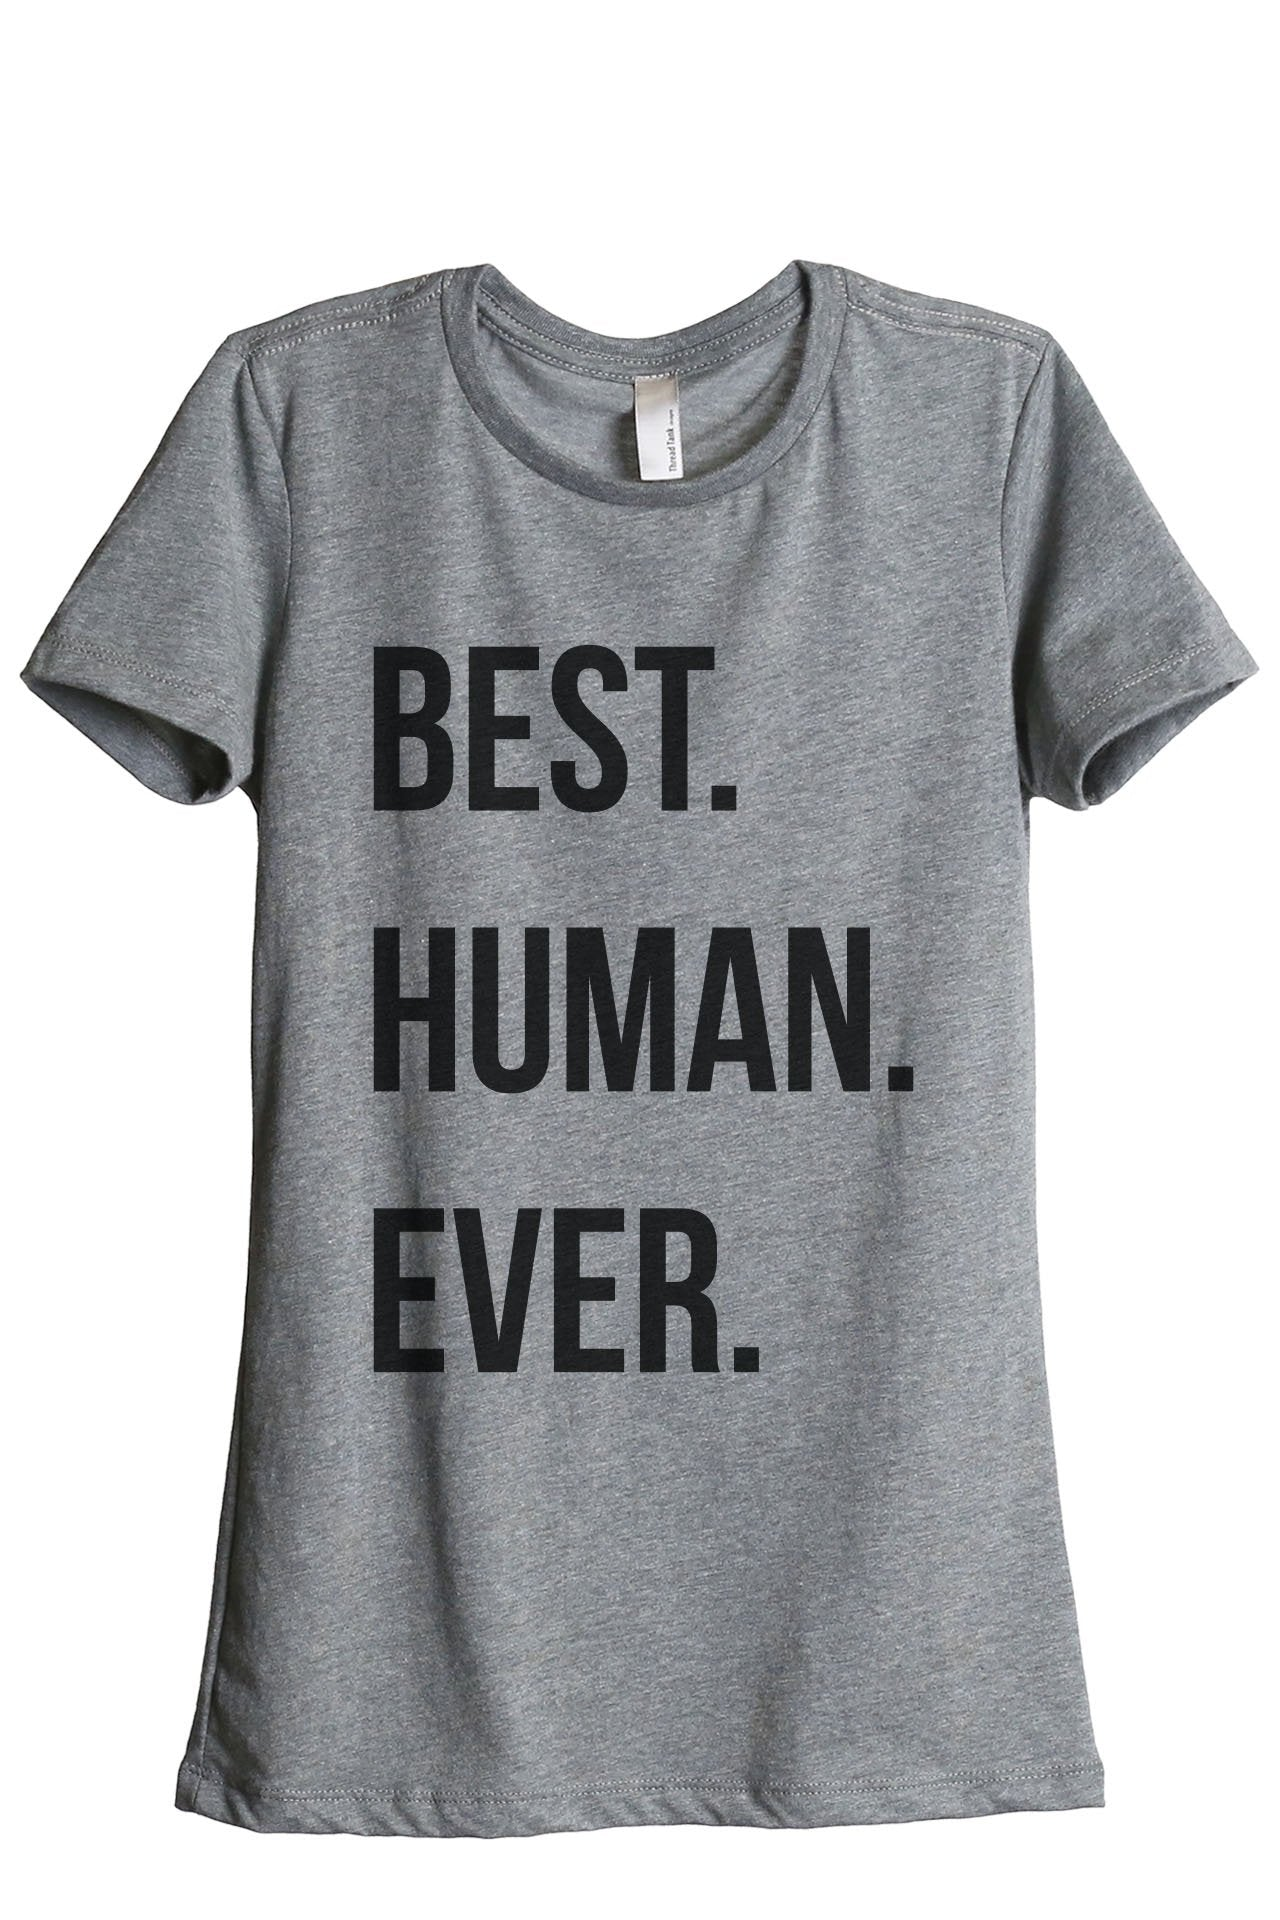 Best Human Ever - Thread Tank | Stories You Can Wear | T-Shirts, Tank Tops and Sweatshirts